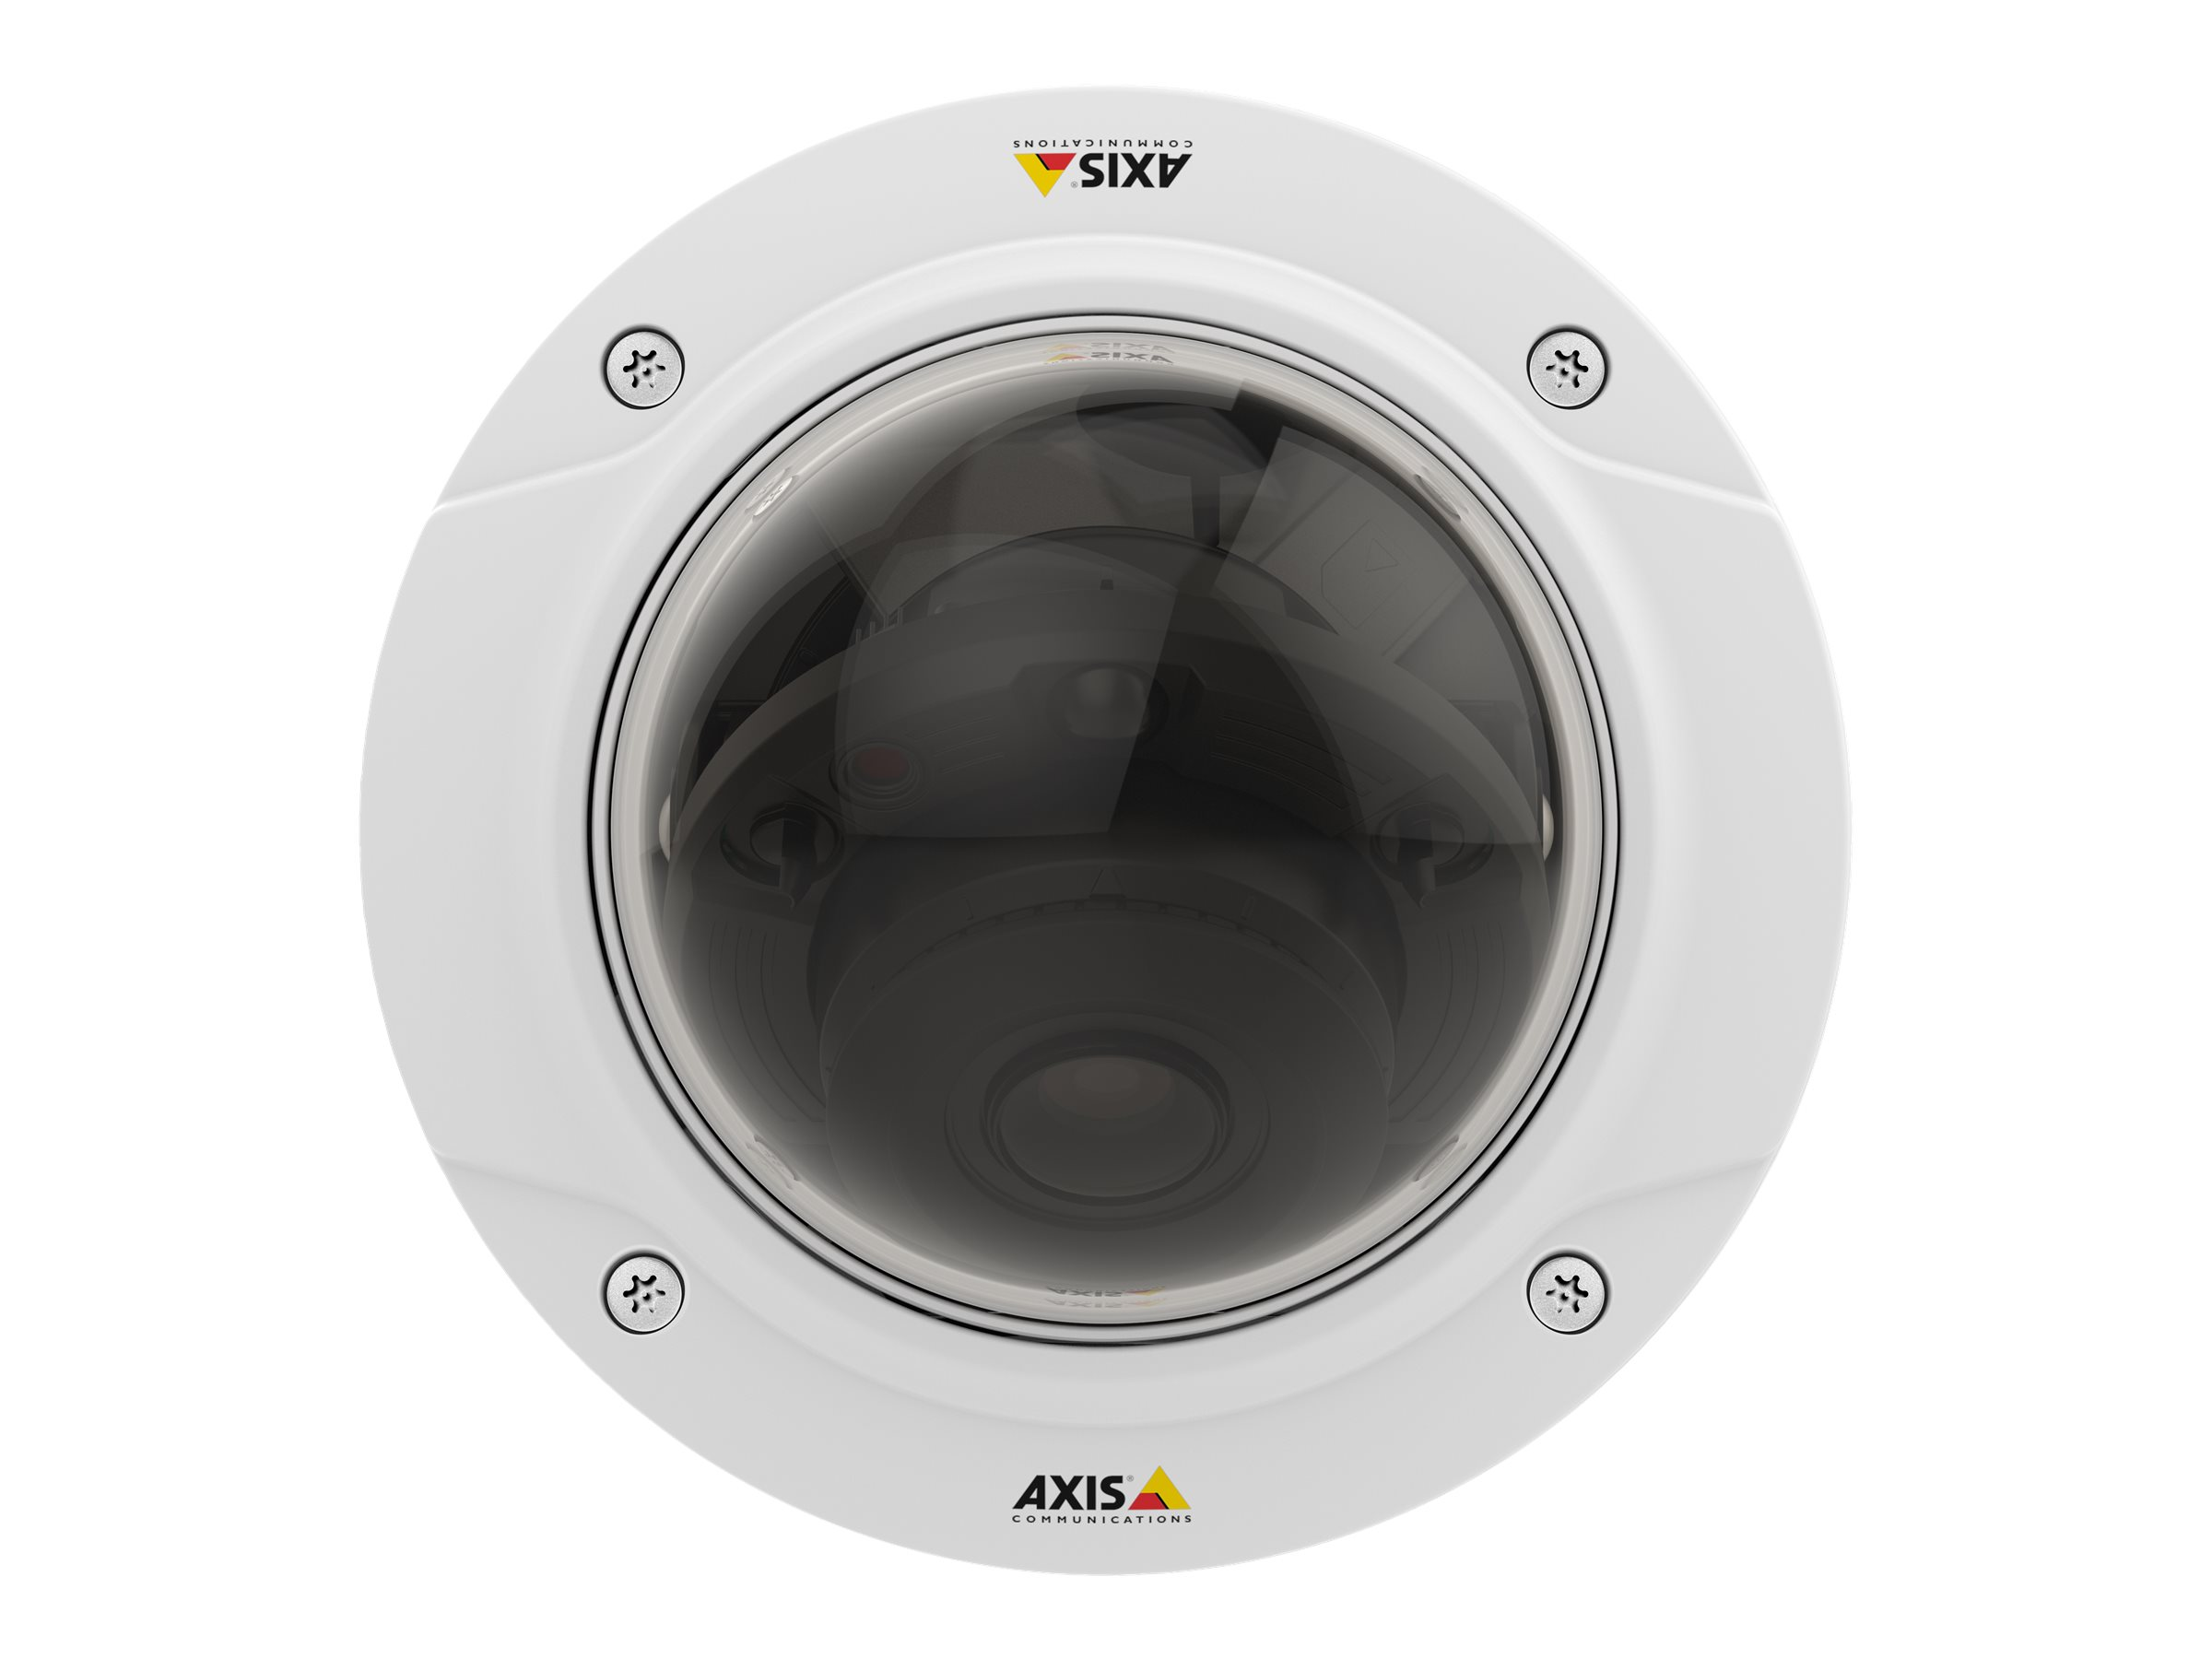 AXIS P3225-LV MKII Network Camera - network surveillance camera - dome